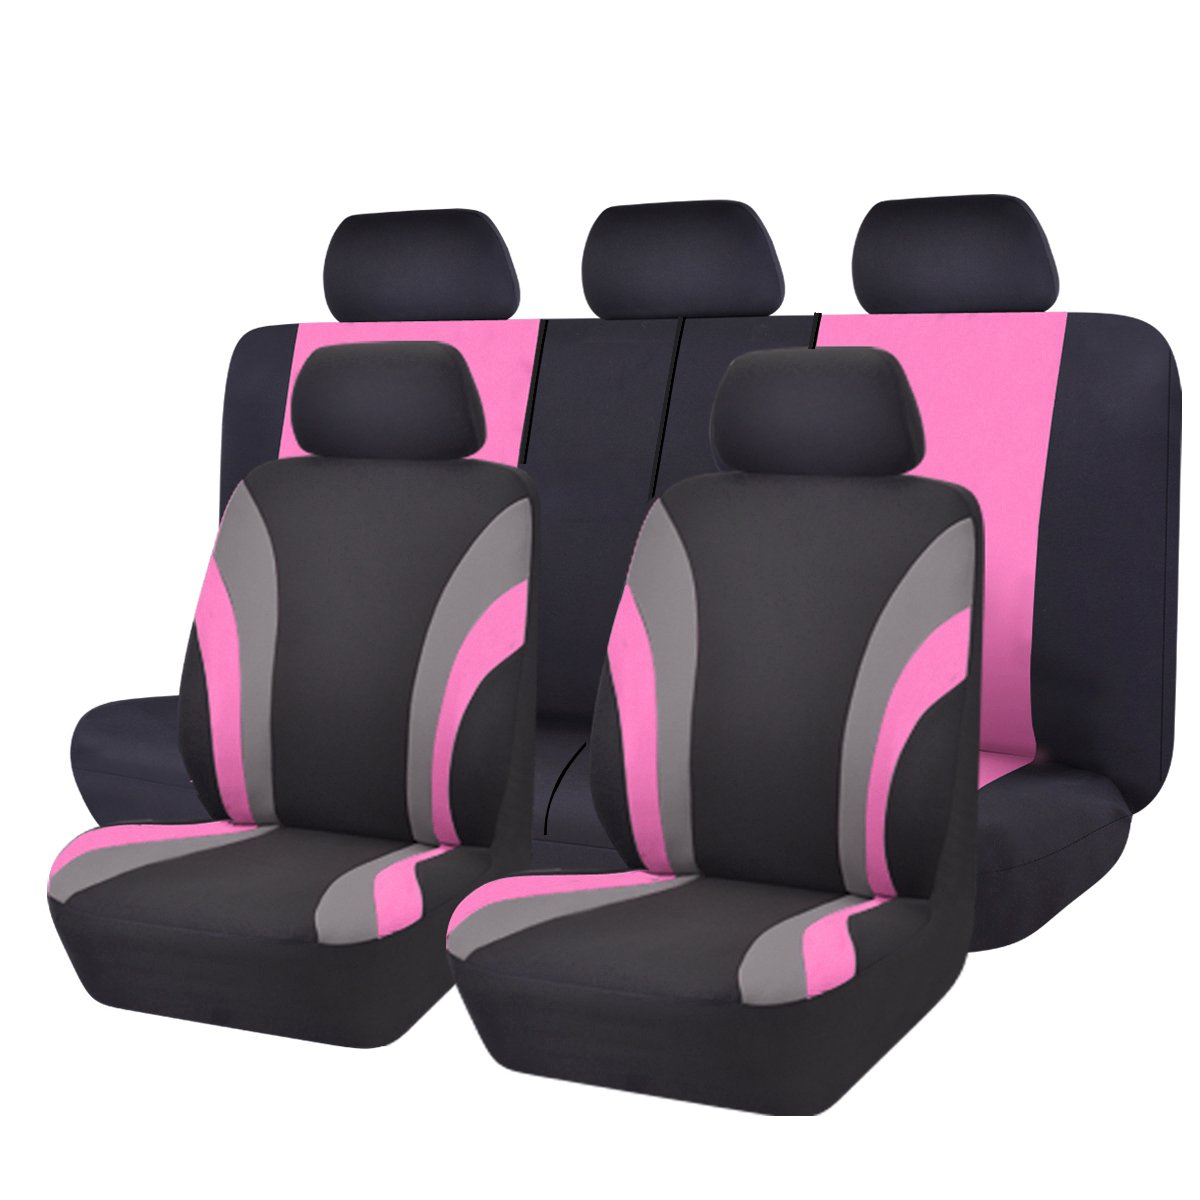 NEW ARRIVAL- CAR PASS Line Rider 11PCS Universal Fit Car Seat Cover -100% Breathable With 5mm Composite Sponge Inside,Airbag Compatible (Black And Rose Red) by CAR PASS